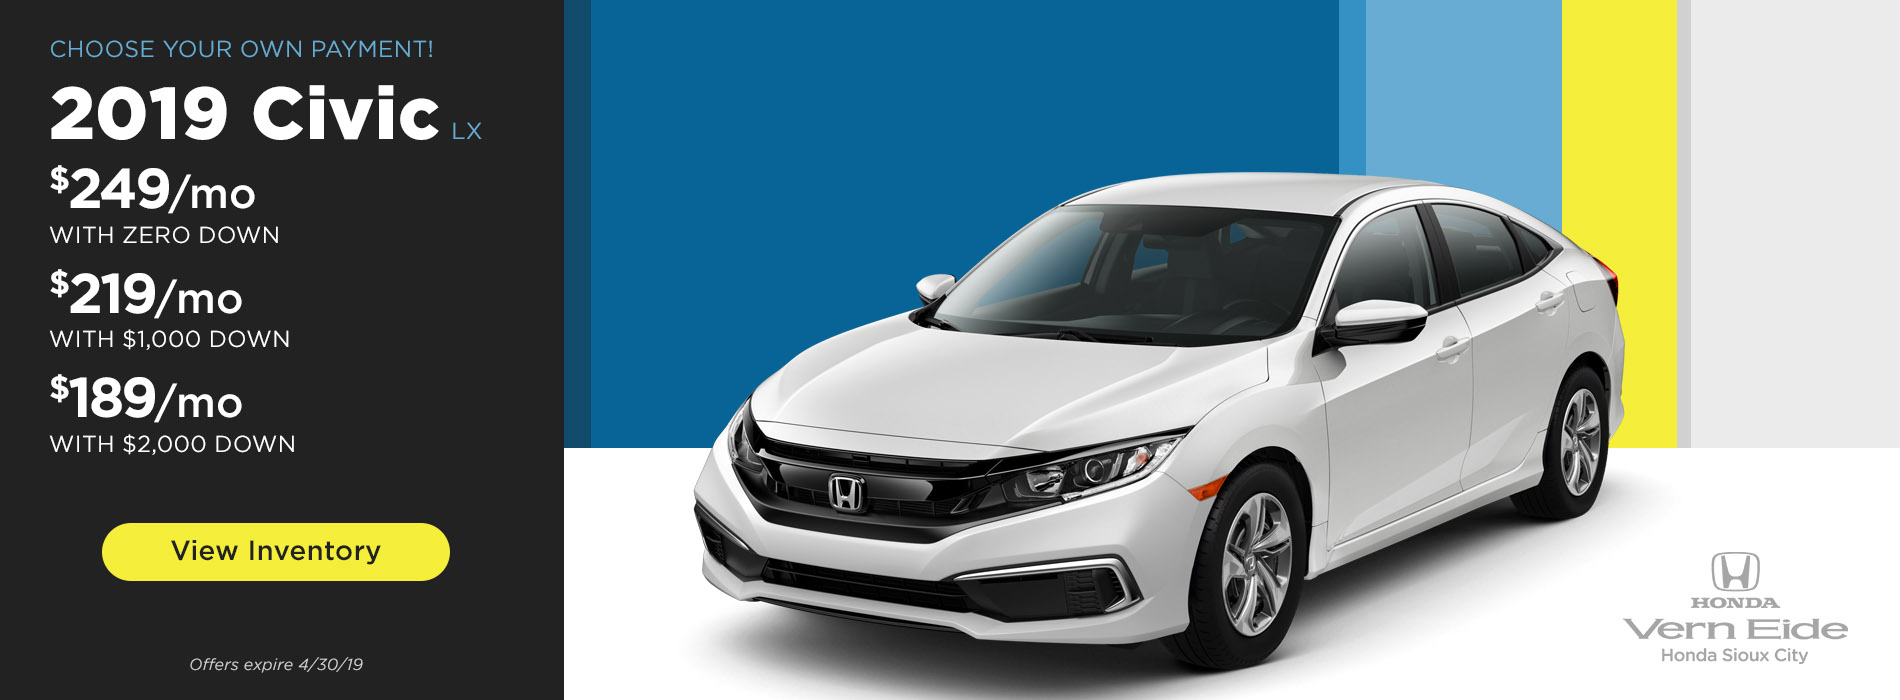 VE Honda Sioux City Civic - April 2019